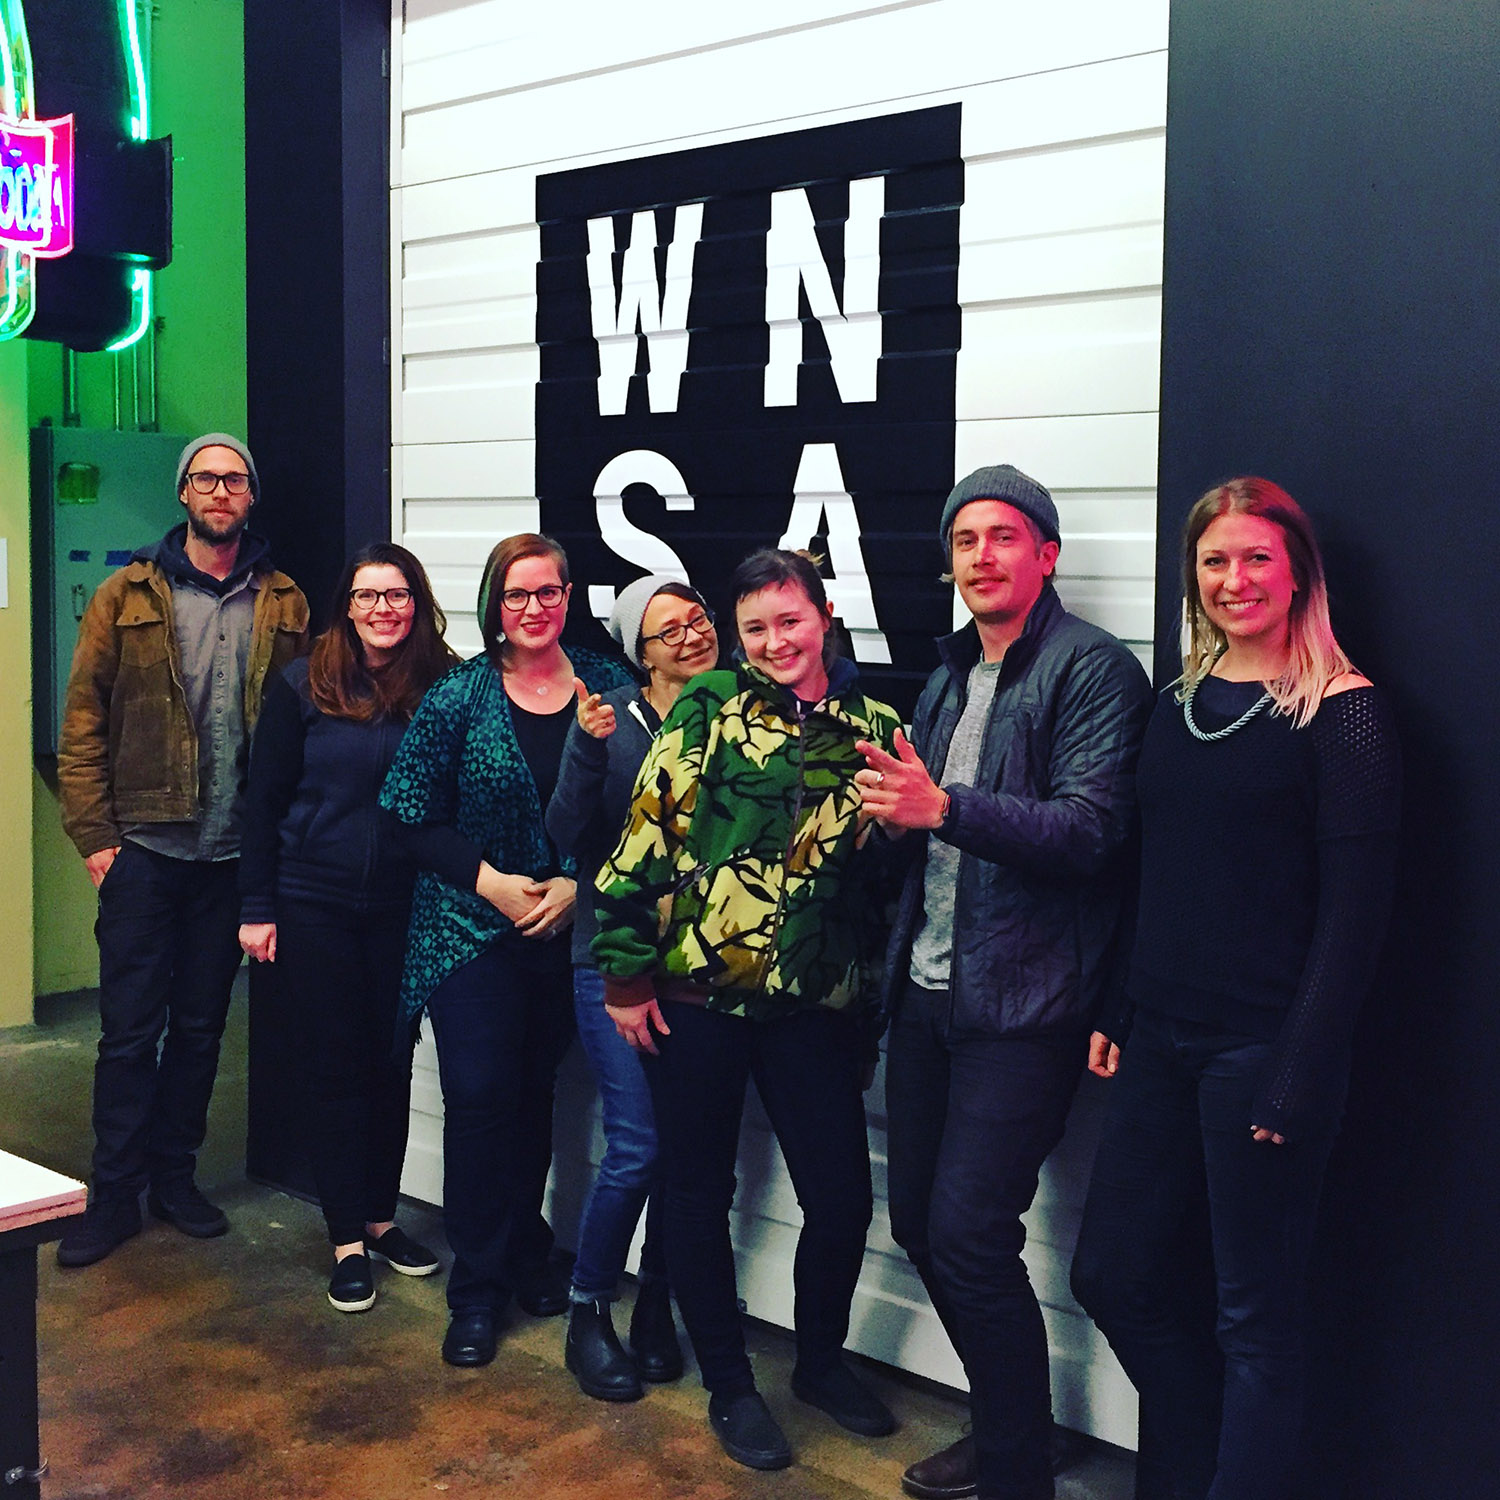 Congratulations to our first graduating class at Western Neon School of Art, from left to right: Yale Wolf, Ashley Smith, Allseon Buchanan, Tania Kupczak, Ramie Kraun, Garret Hystek, and Kathleen Warren. Kyhre Matthews is not pictured since he was on tour with his band during the final class session.